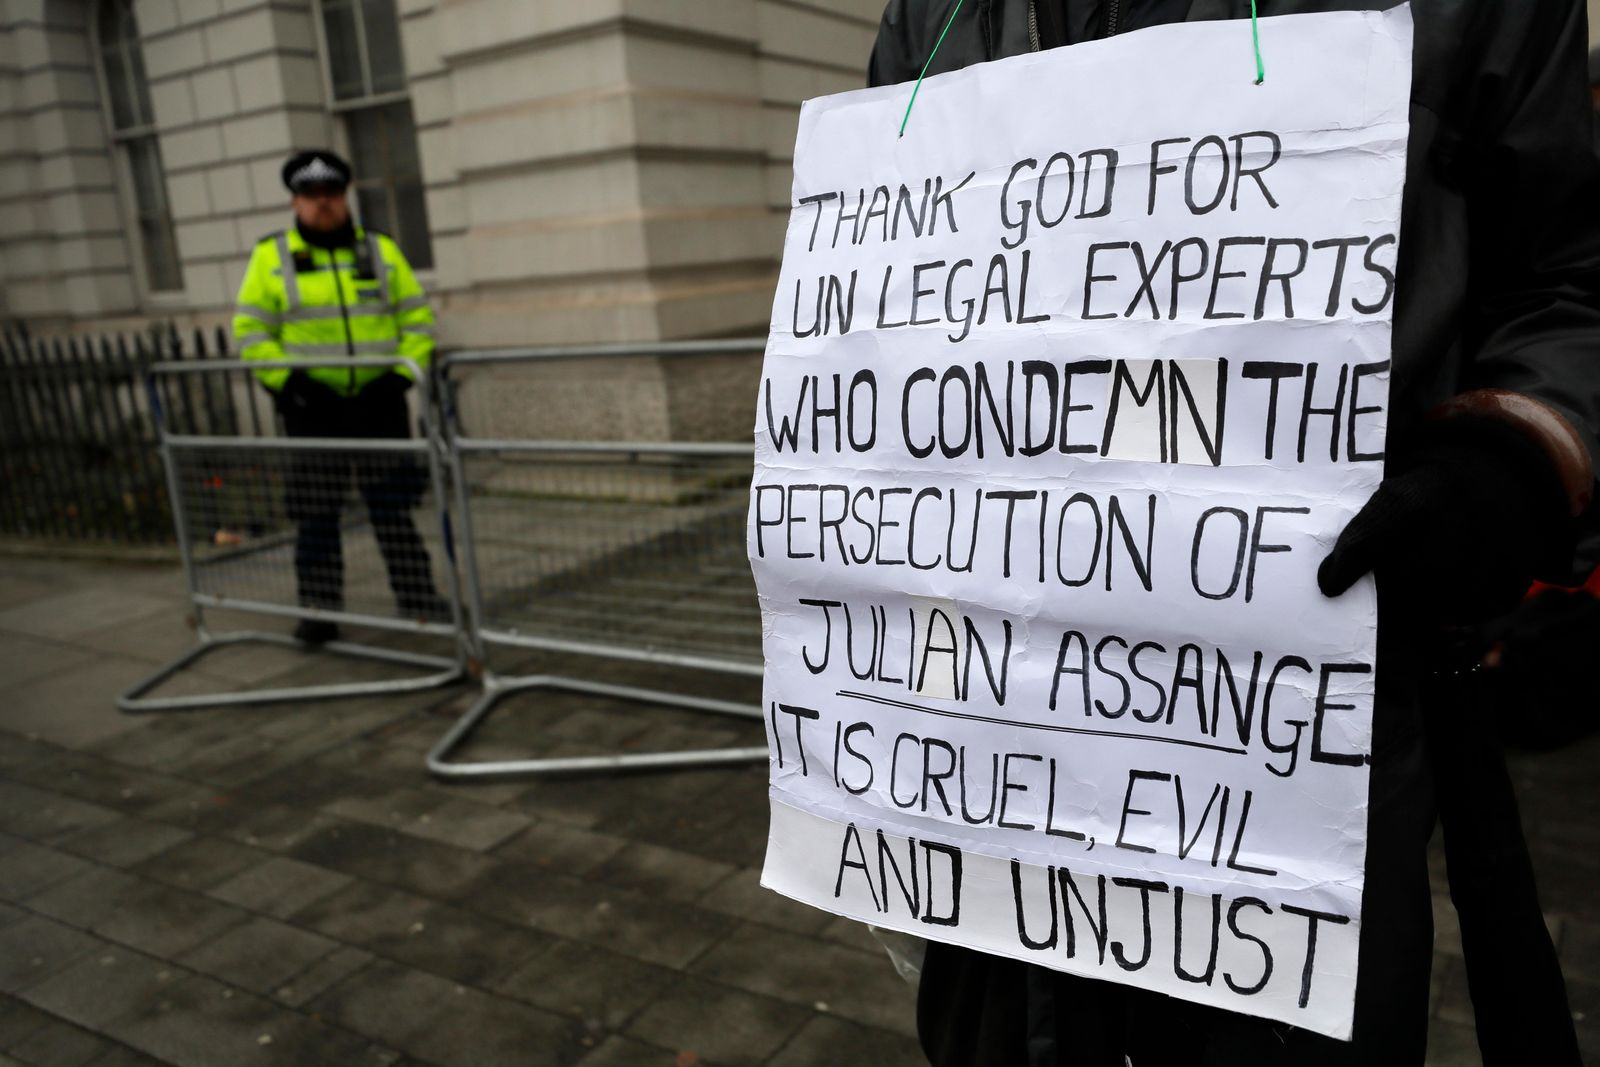 A demonstrator supporting Julian Assange holds a banner outside Westminster Magistrates Court in London, Thursday, Jan. 23, 2020.{ } (AP Photo/Kirsty Wigglesworth)